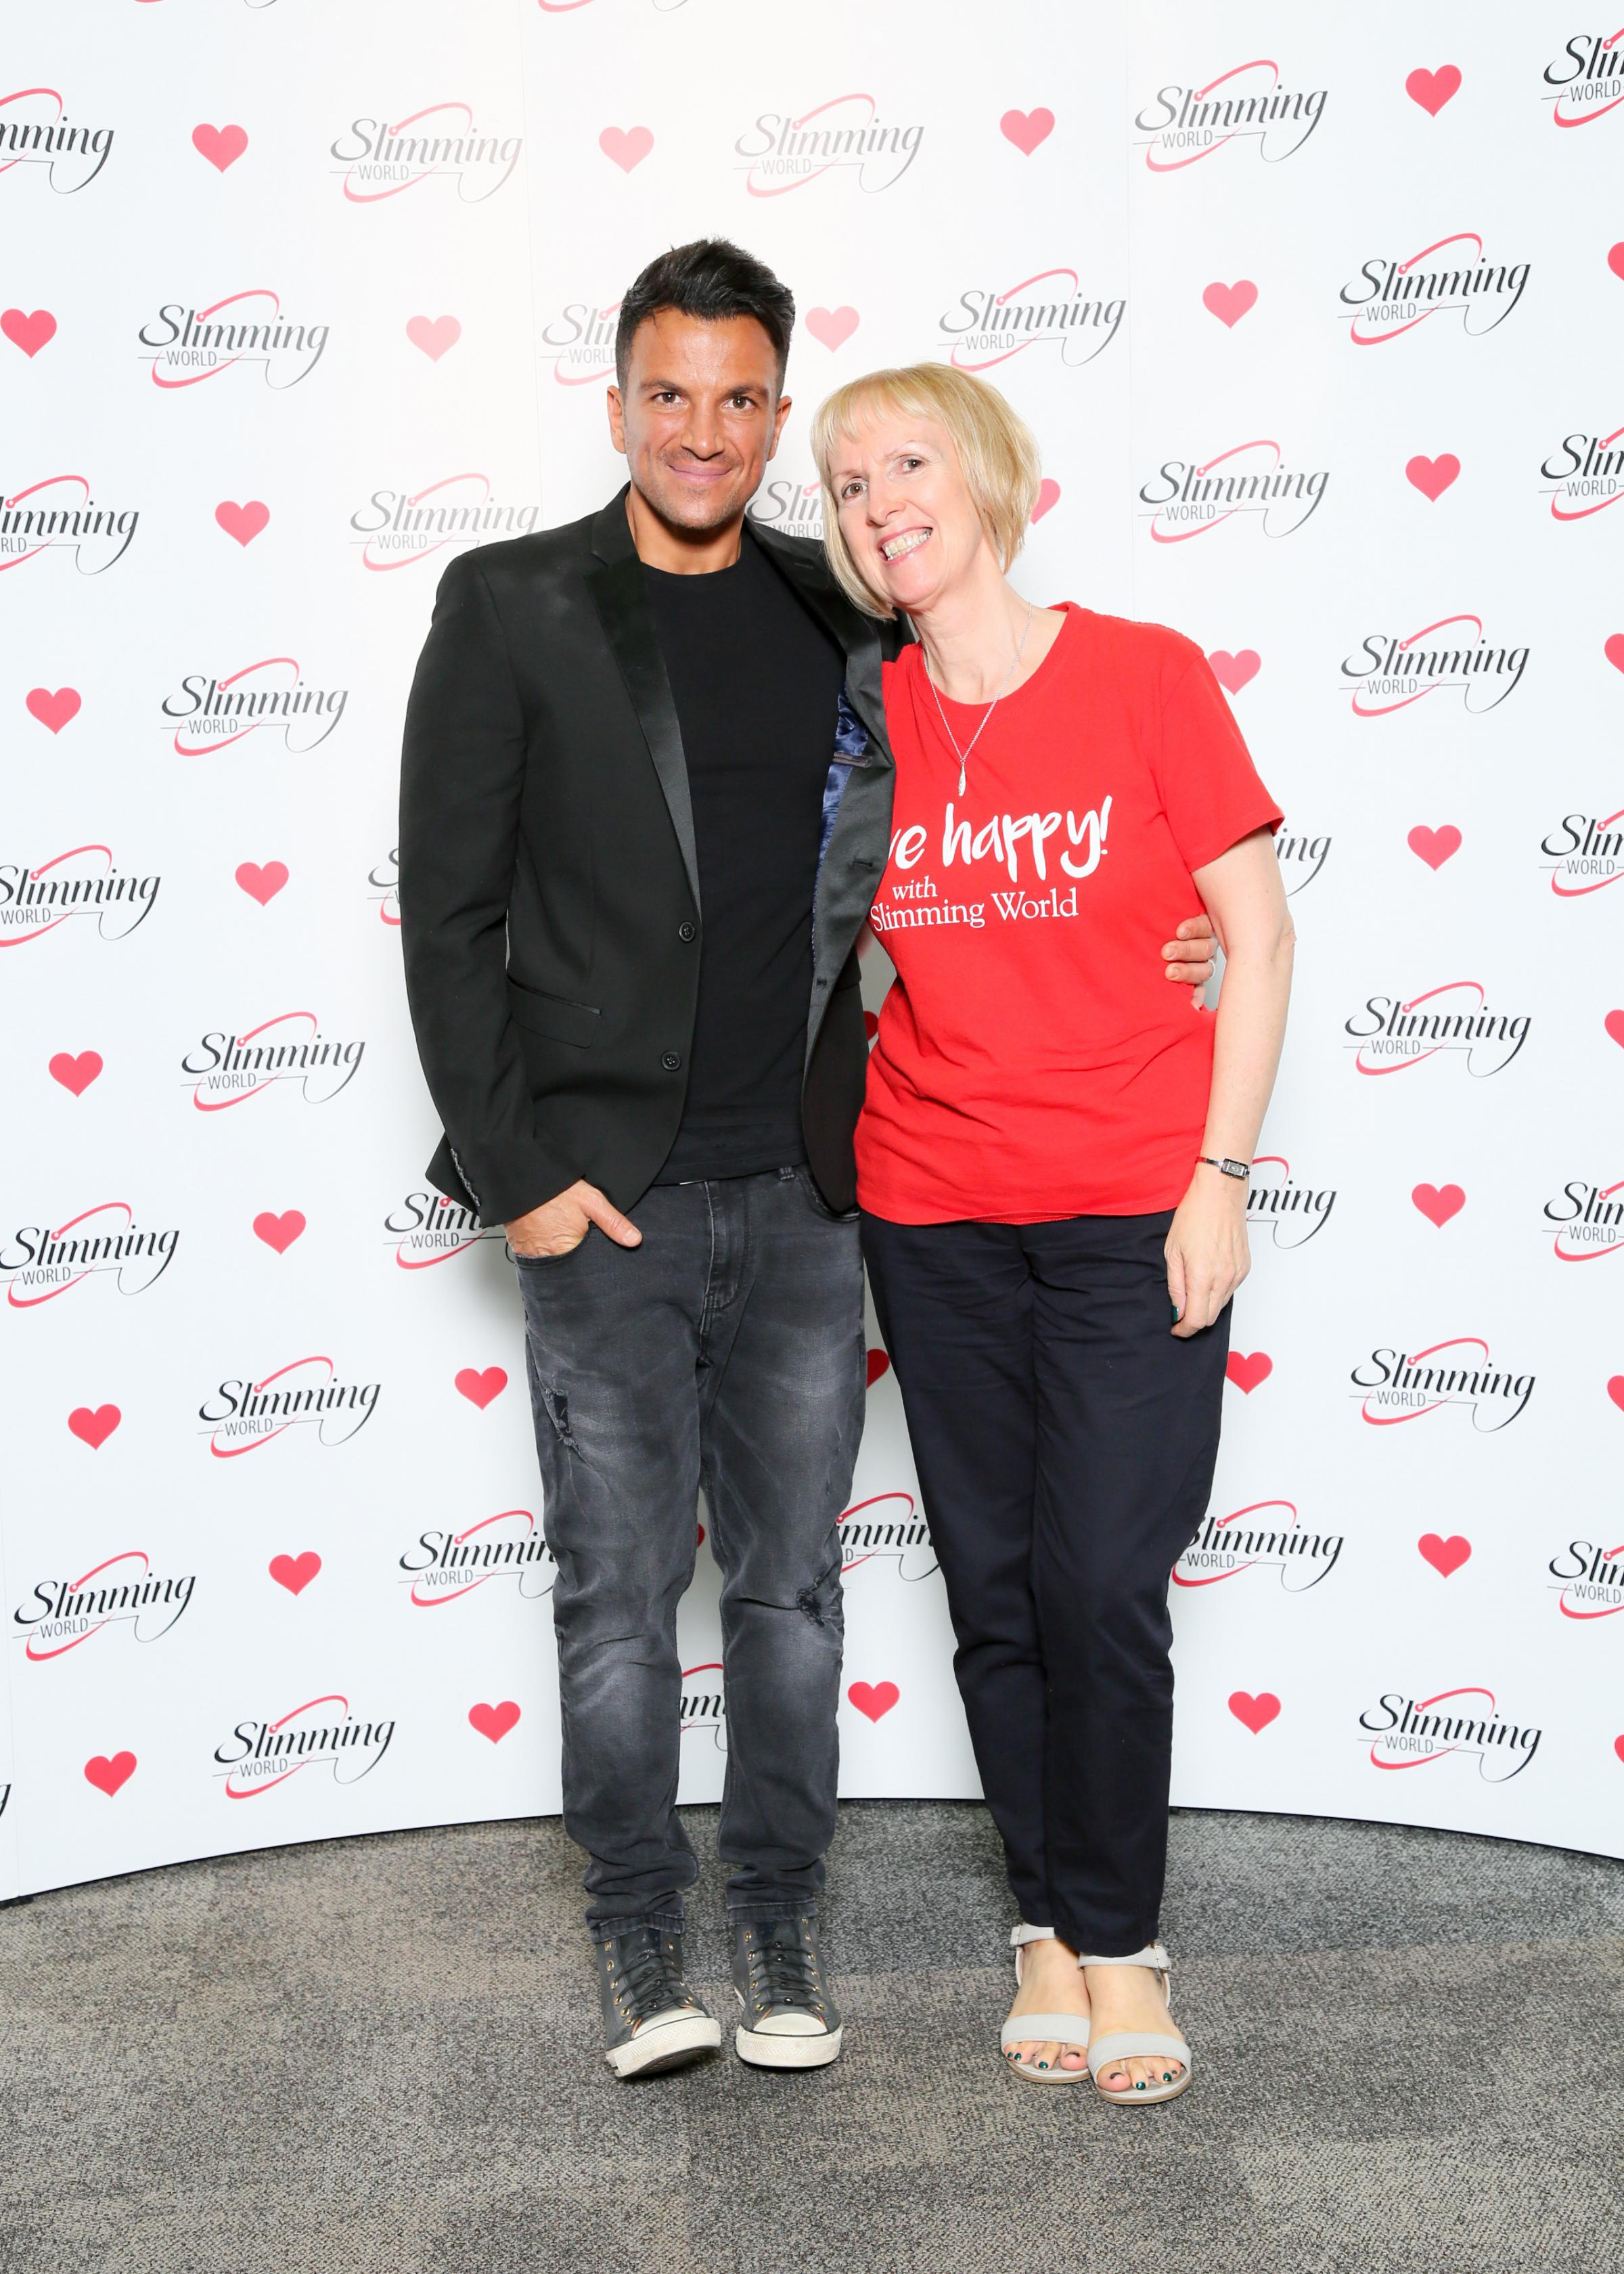 Slimming World Consultant Liz Smith meets singer and presenter Peter Andre.